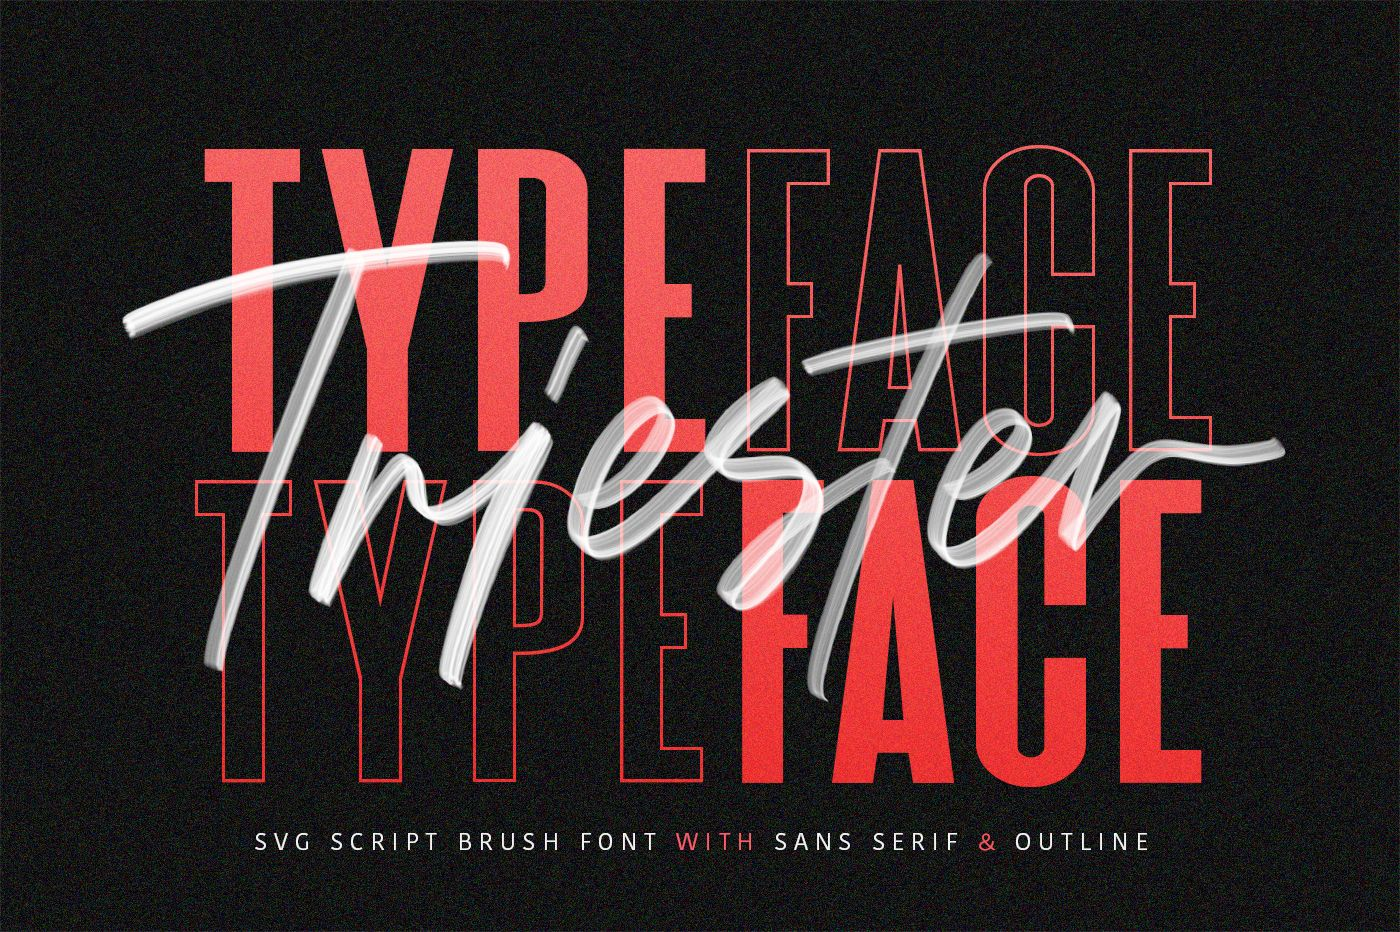 Triester Svg Brush Font Free Sans Brush Font Typography Quotes